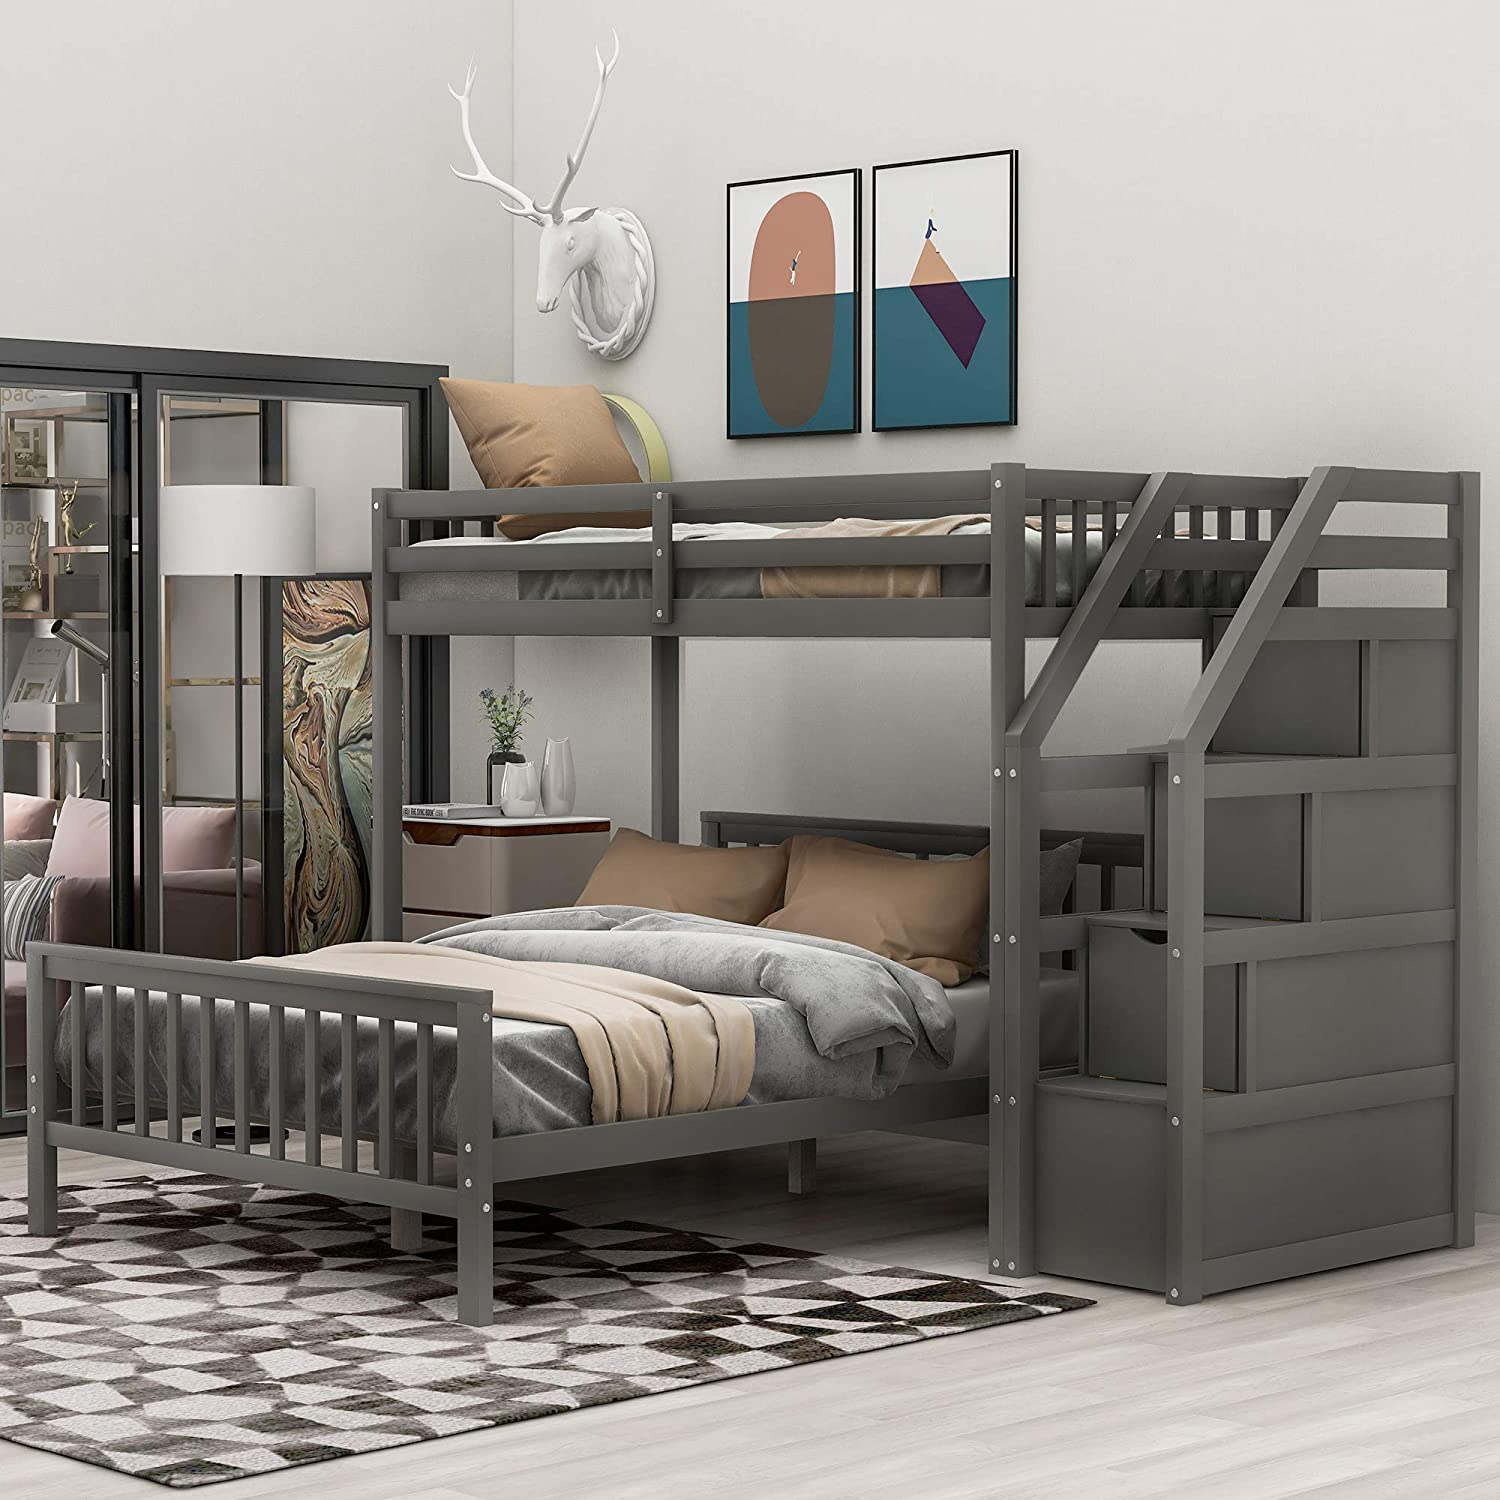 Twin Over Full Bunk Bed For Kids Wood L Shaped Twin Loft With Storage And Full Platform Bed For Kids Grey Kitchen Dining